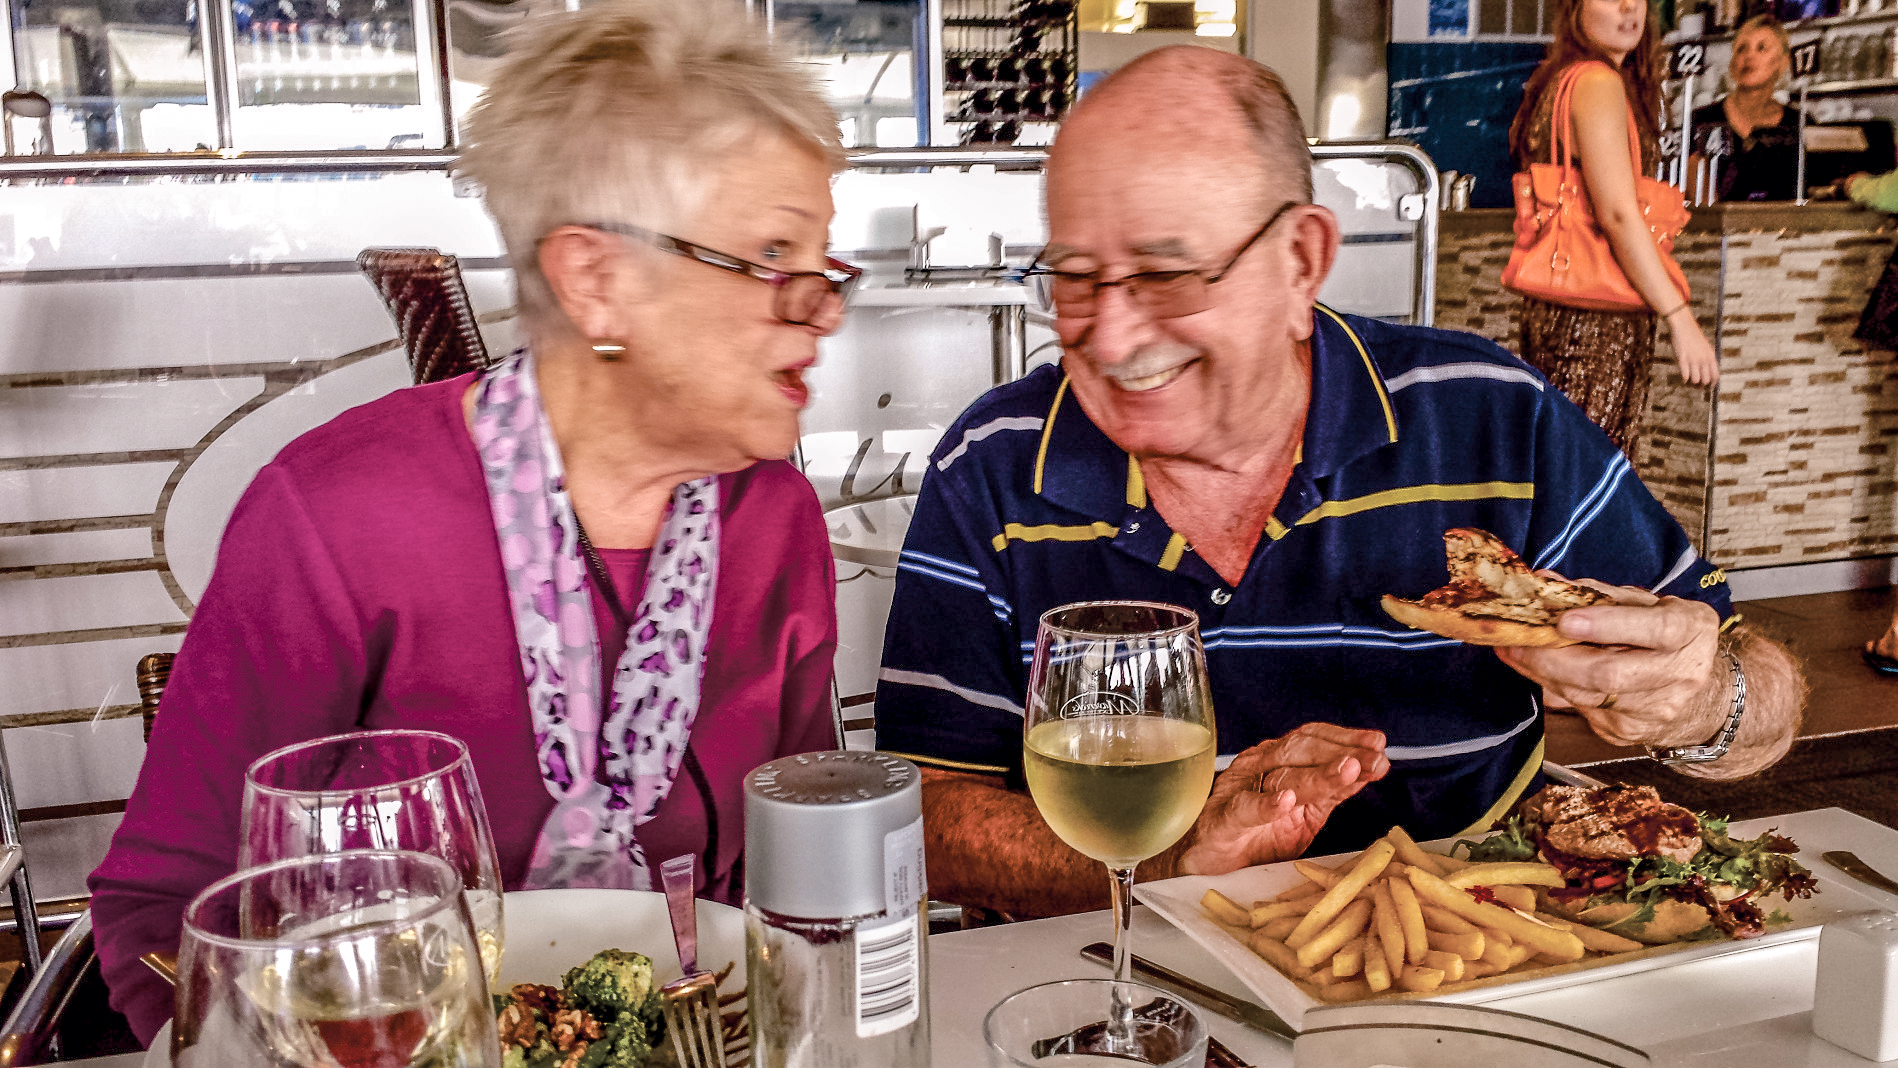 Ken and Bev Dunn enjoying lunch.